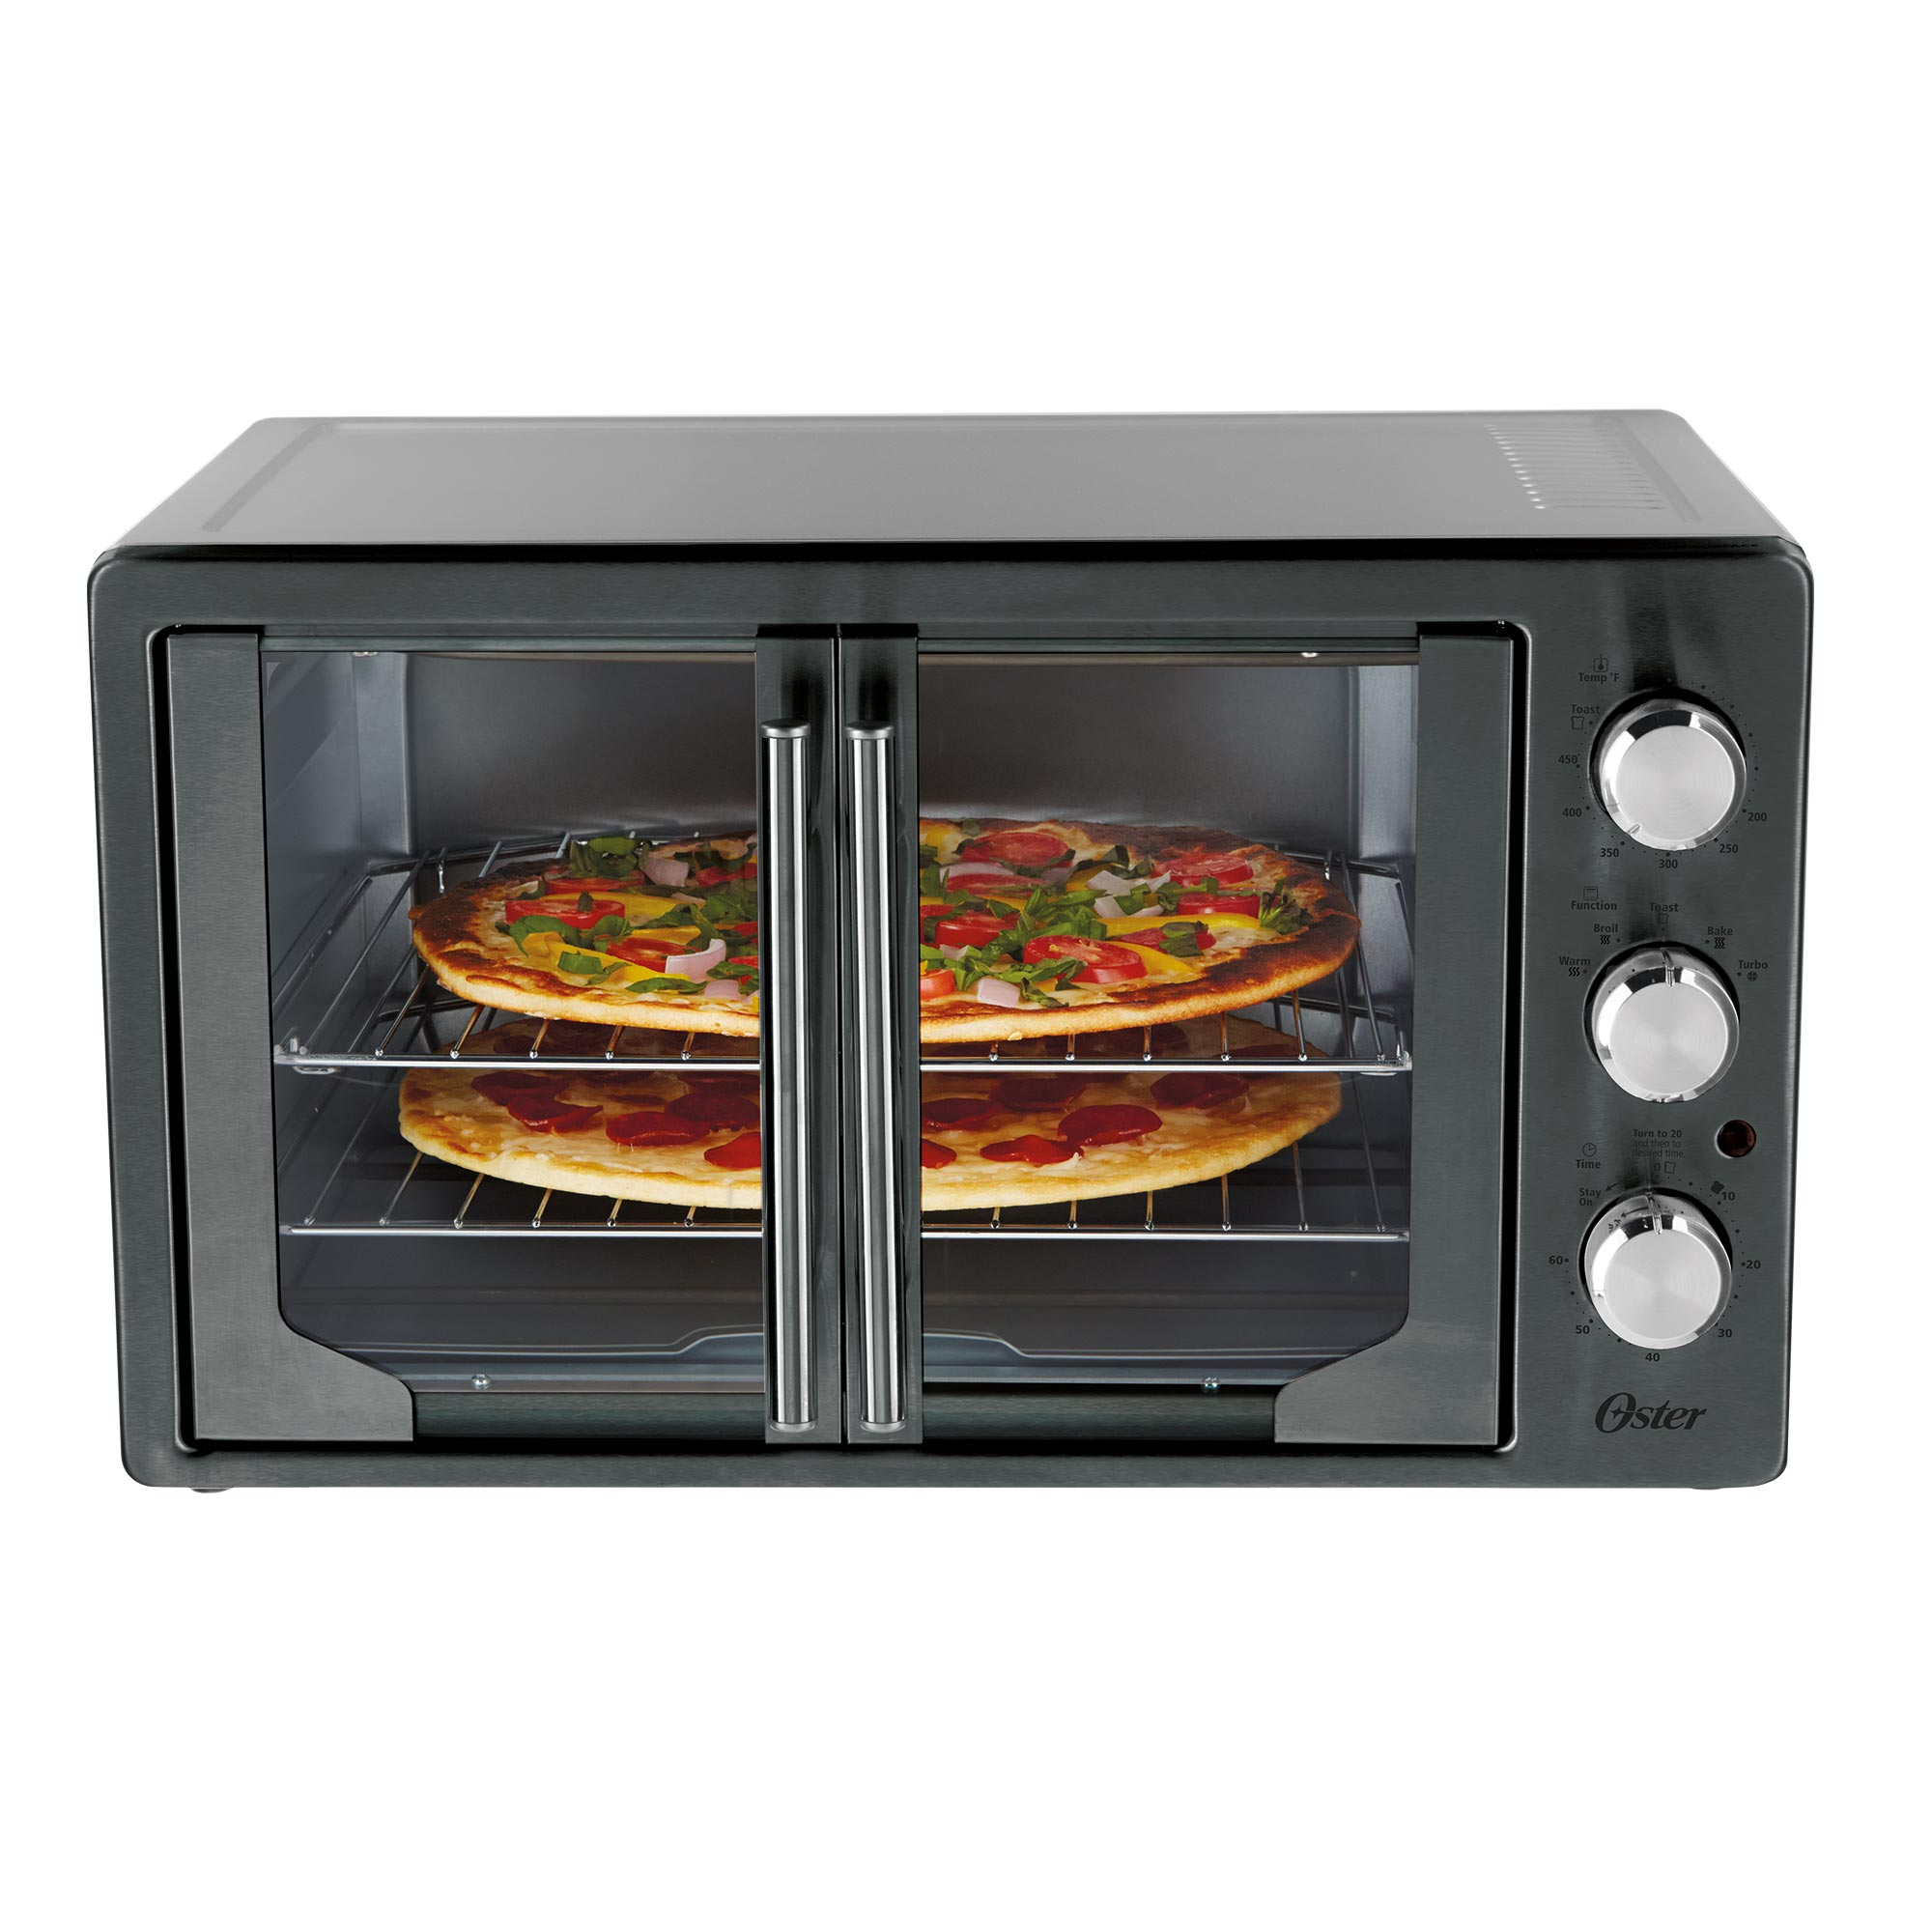 Oster French Door Oven with Convection, Metallic Charcoal